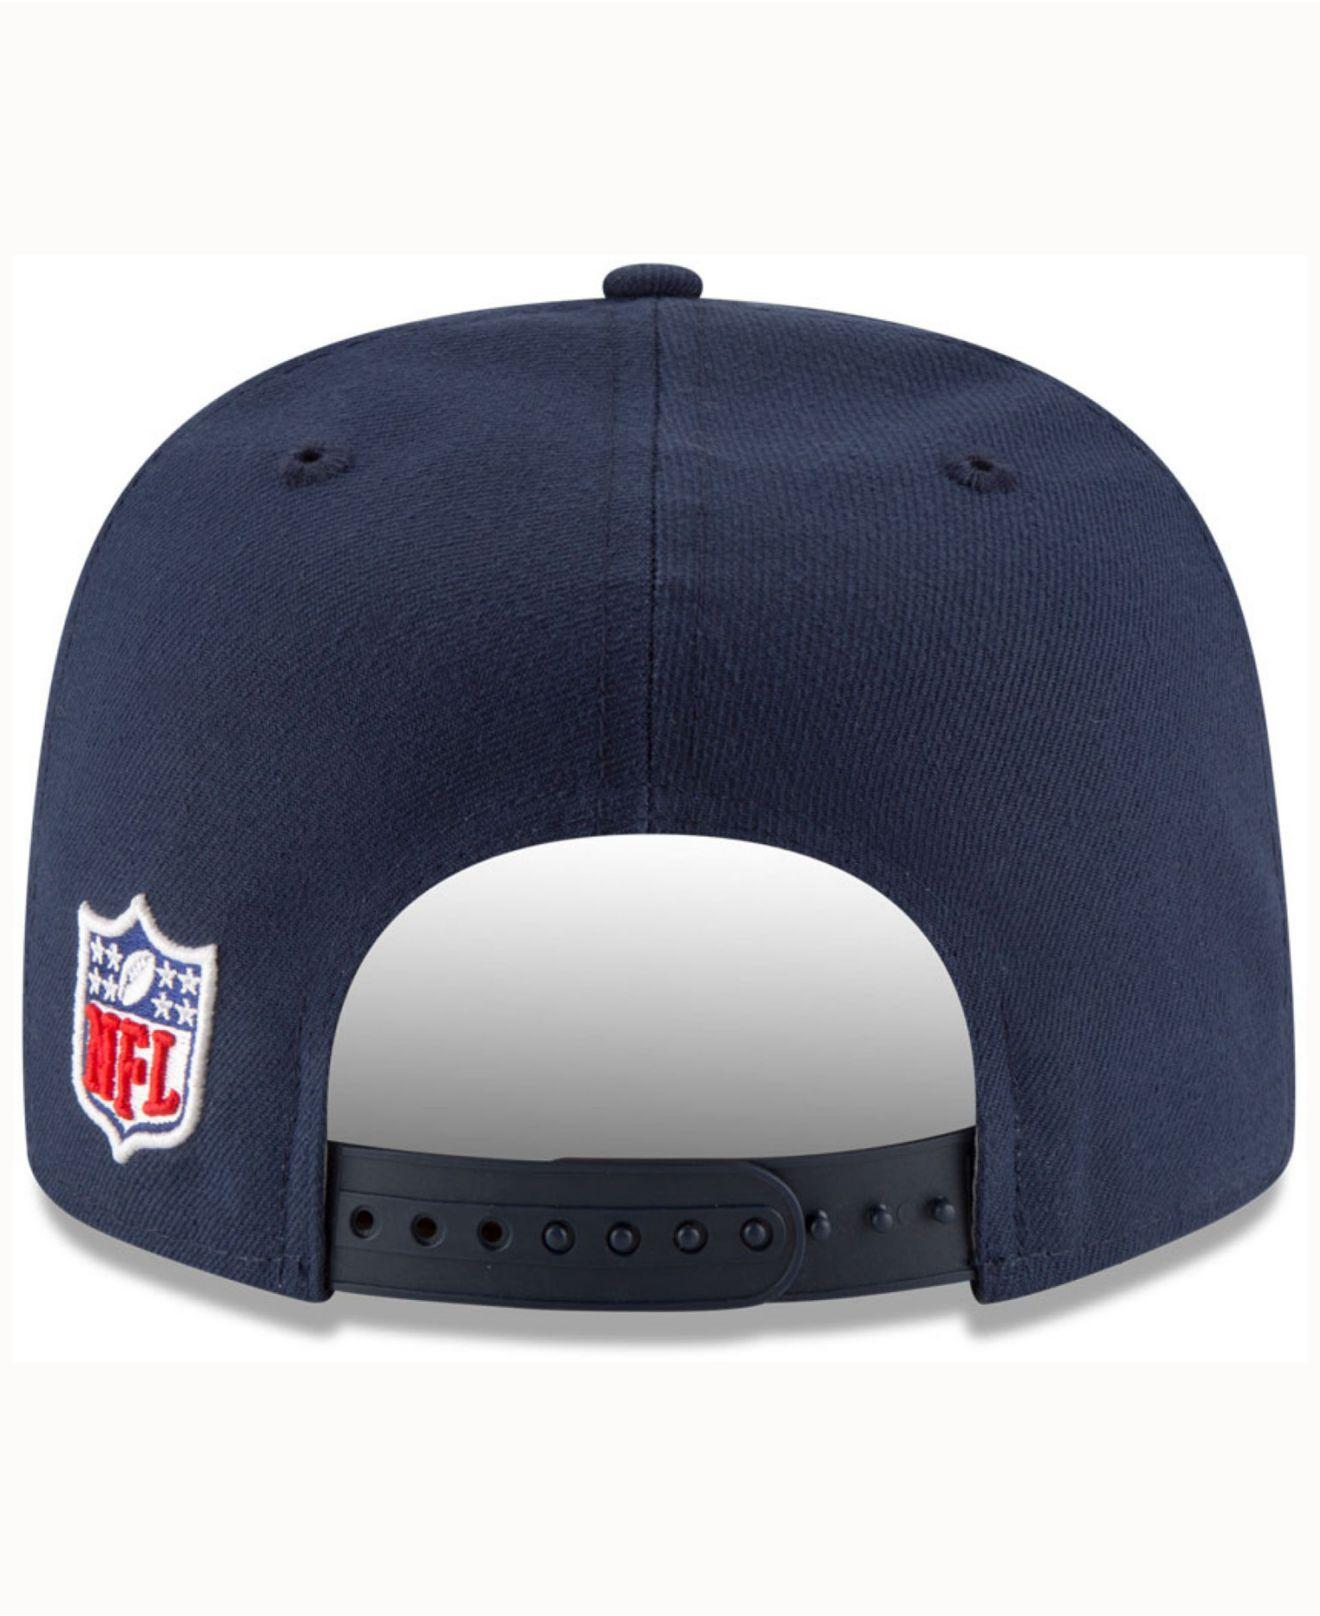 894a242ea Lyst - Ktz Seattle Seahawks Official Sideline 9fifty Cap in Blue for Men